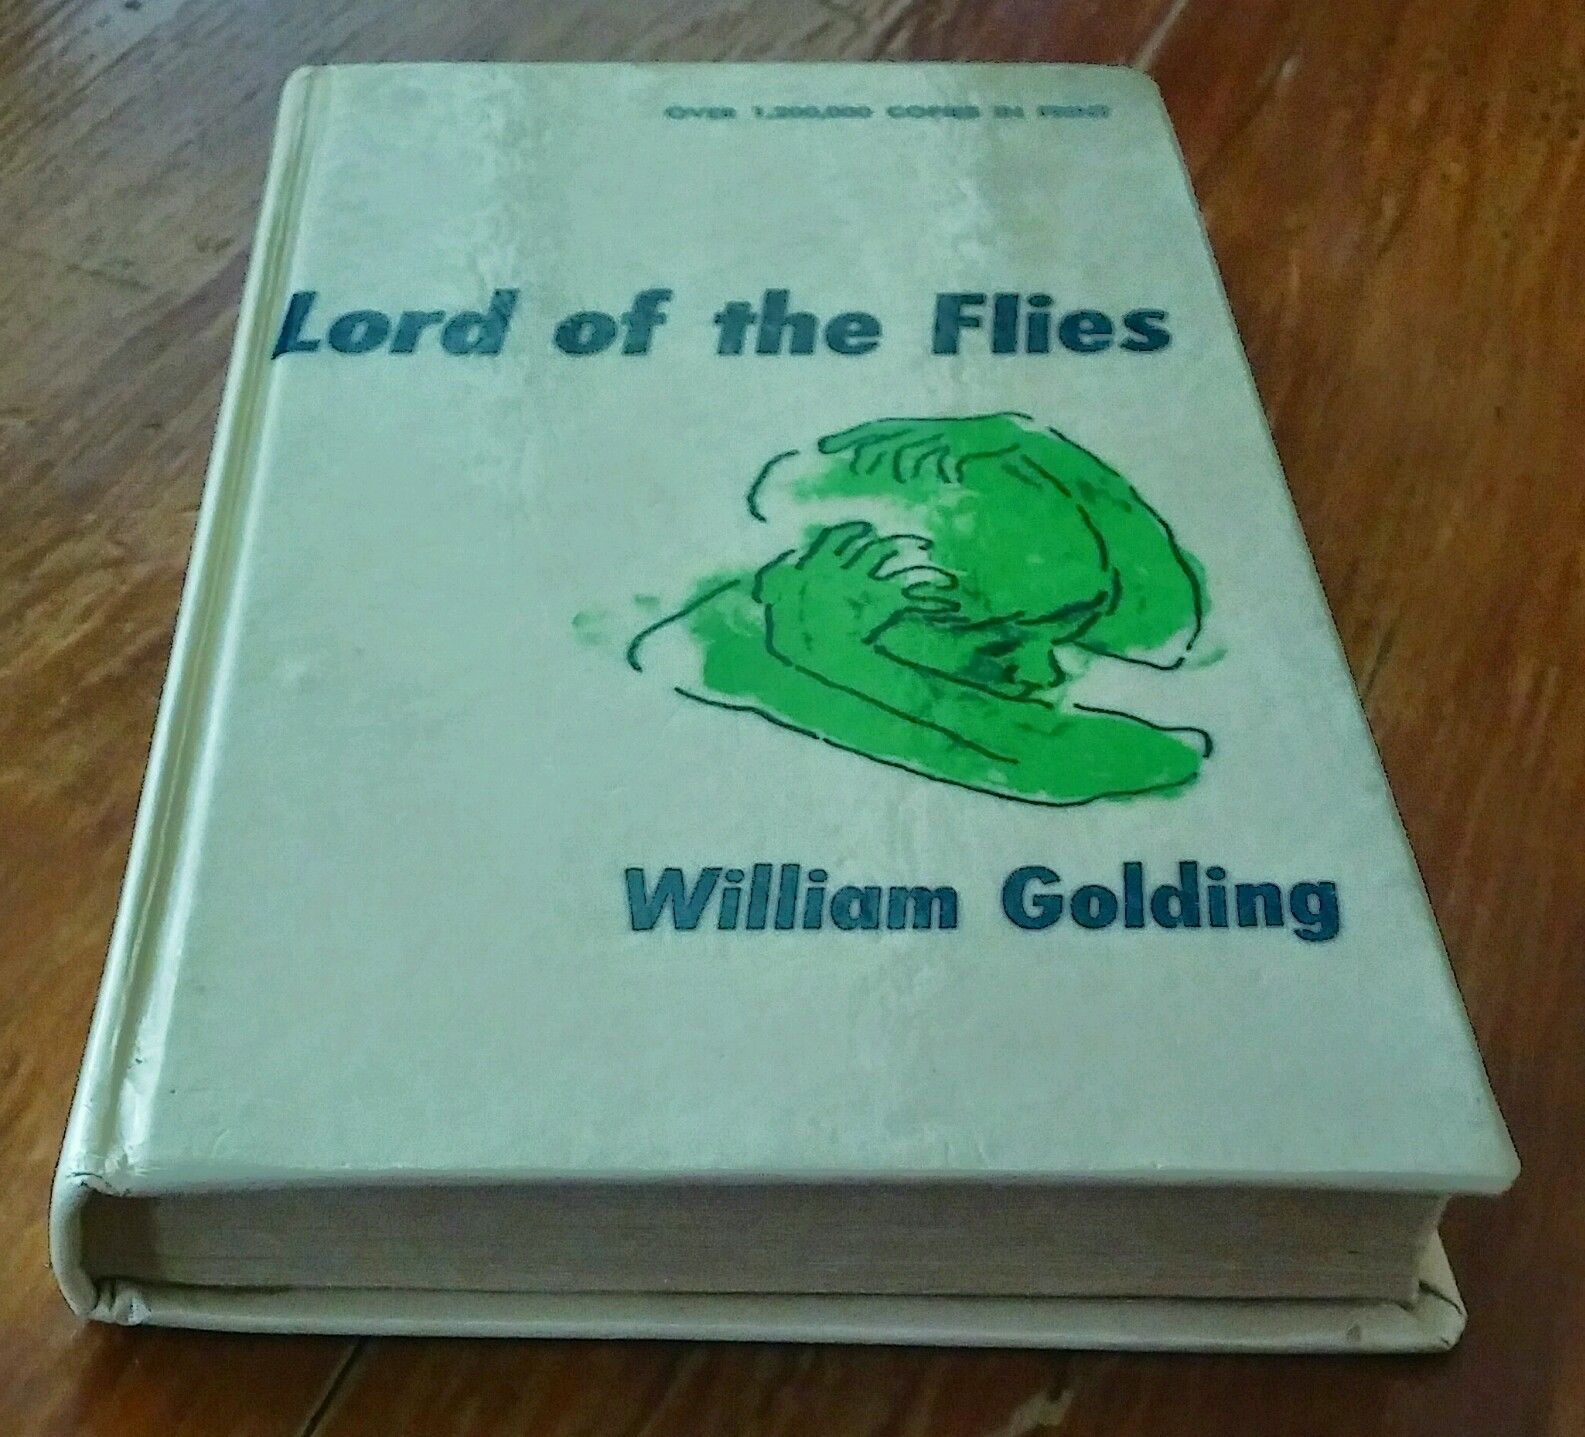 an analysis of mankinds nature in lord of the flies by william golding 8 - then there was a vicious snarling in the mouth of the shelter and the plunge and thump of living things someone tripped over ralph and piggy's corner became a complication of snarls and crashes and flying limbs read the book now: lord of the flies by william golding.